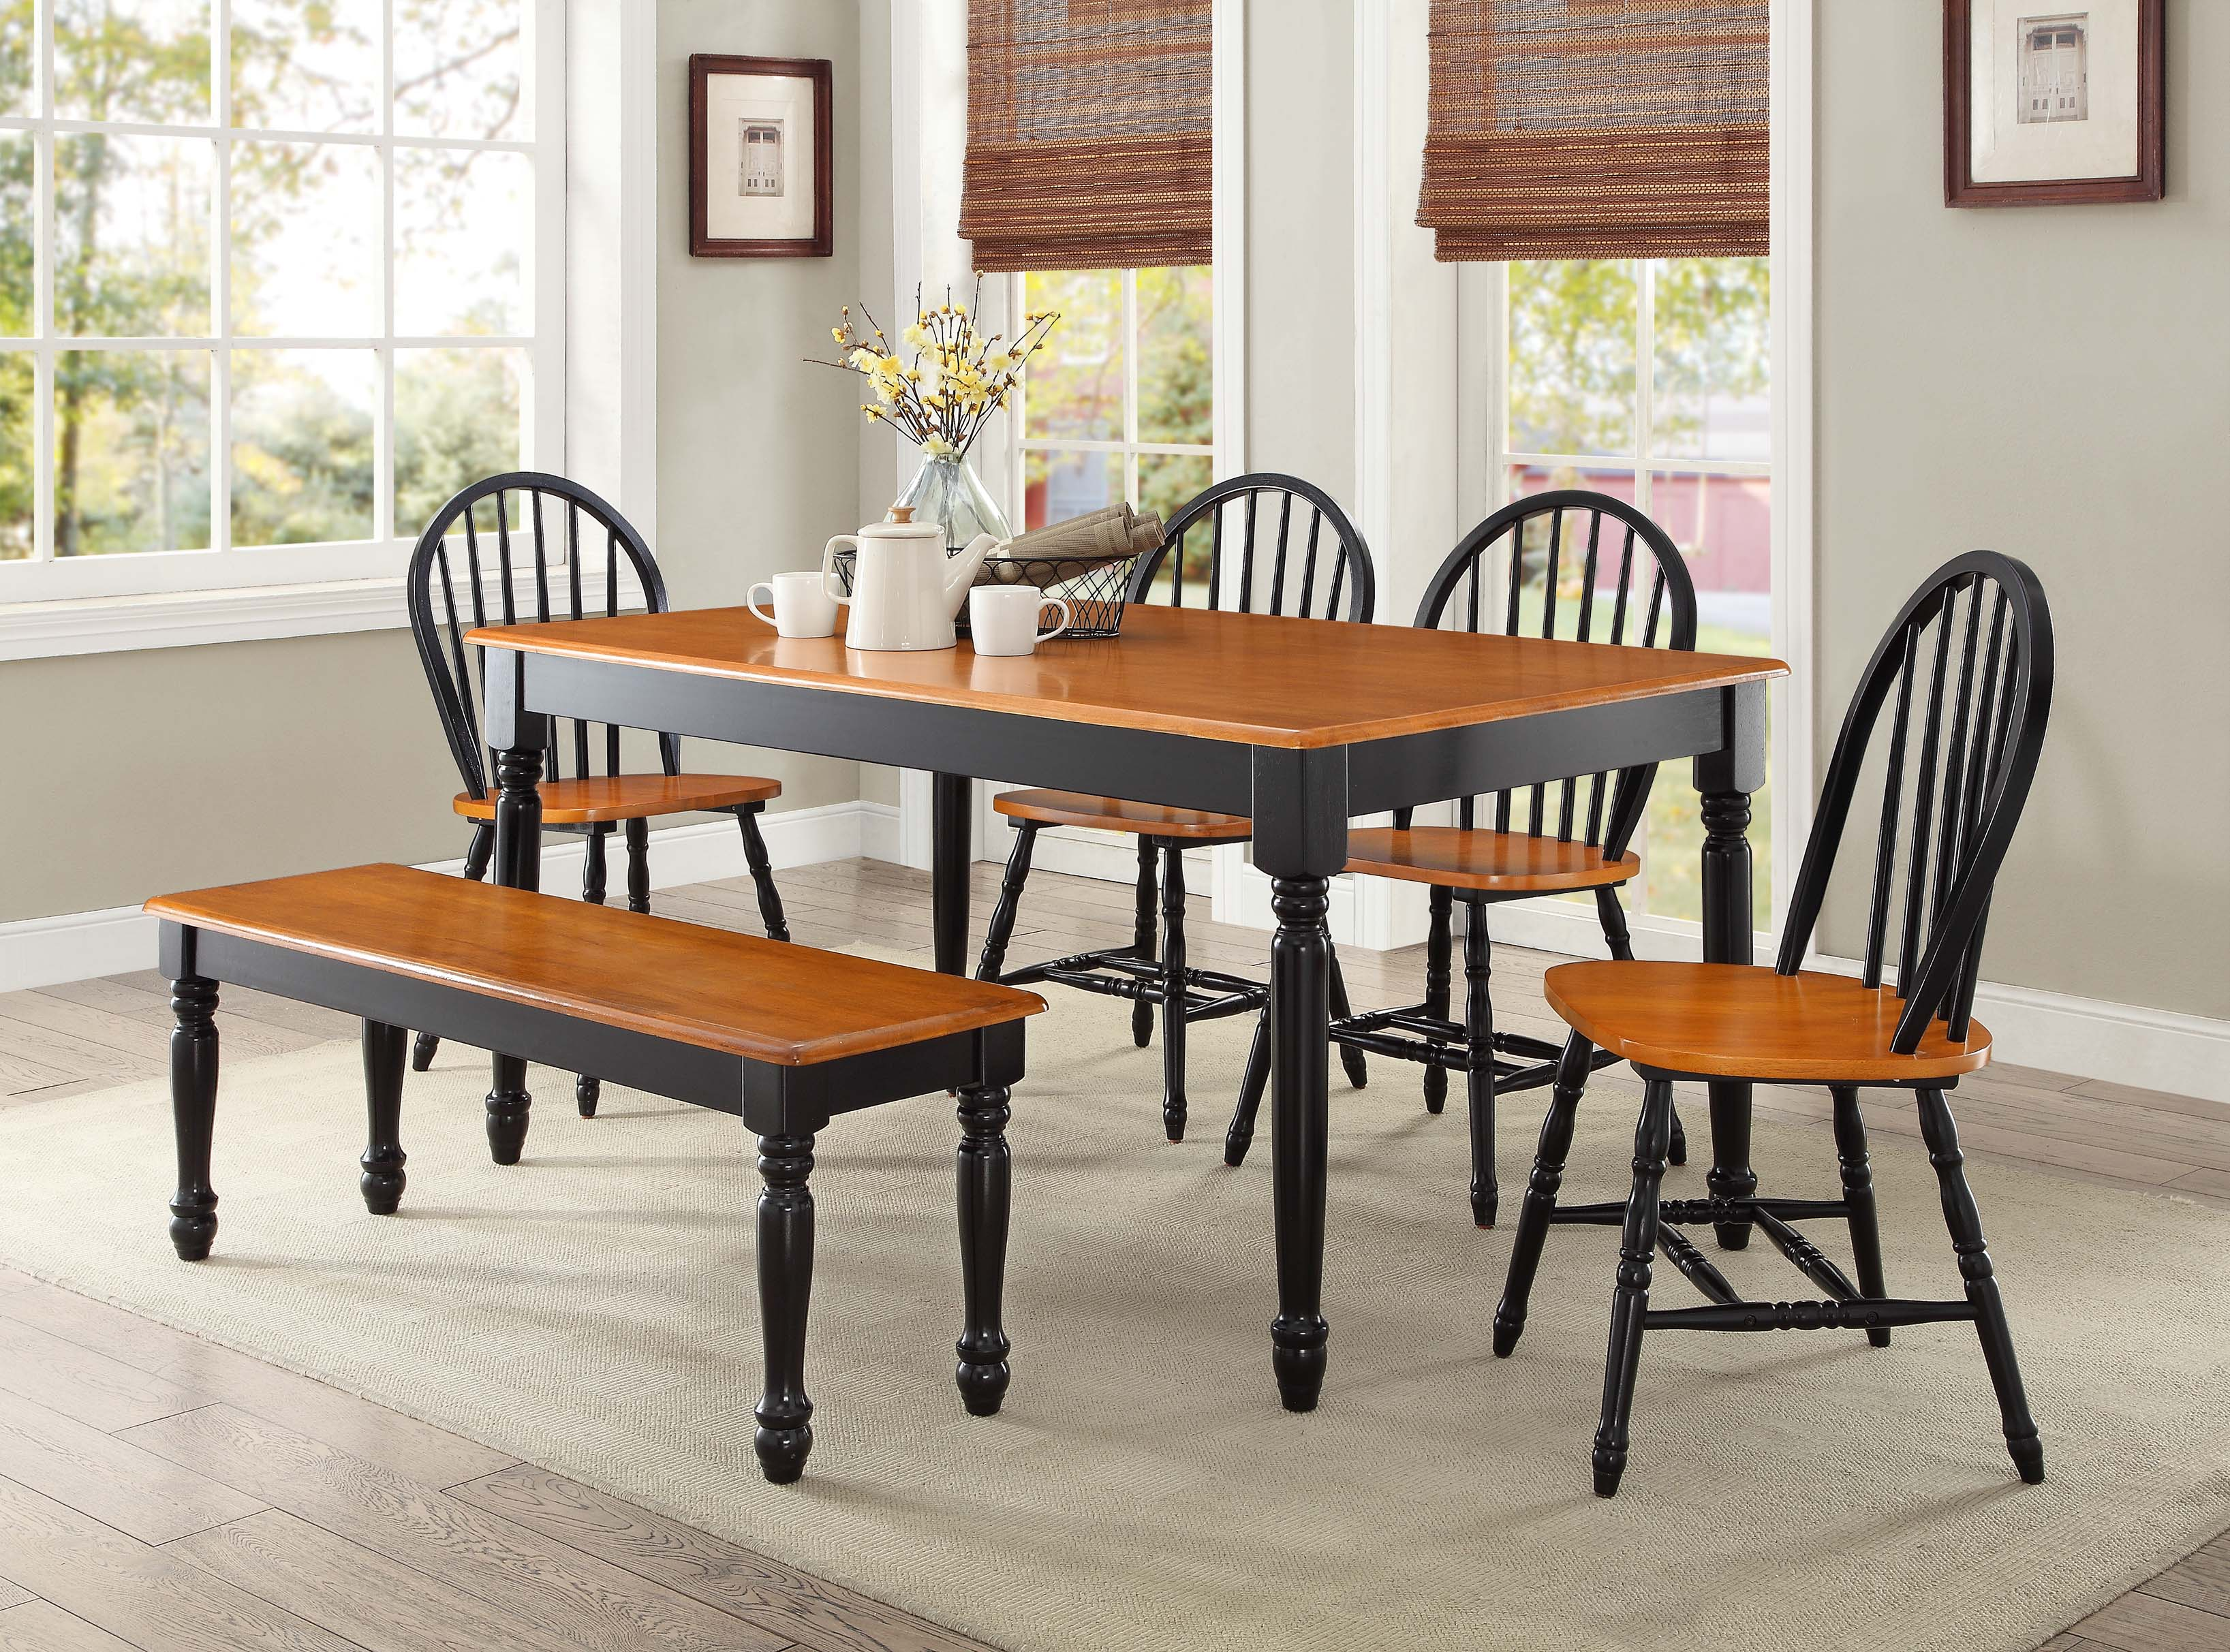 Black Extendable Dining Table kitchen & dining furniture - walmart